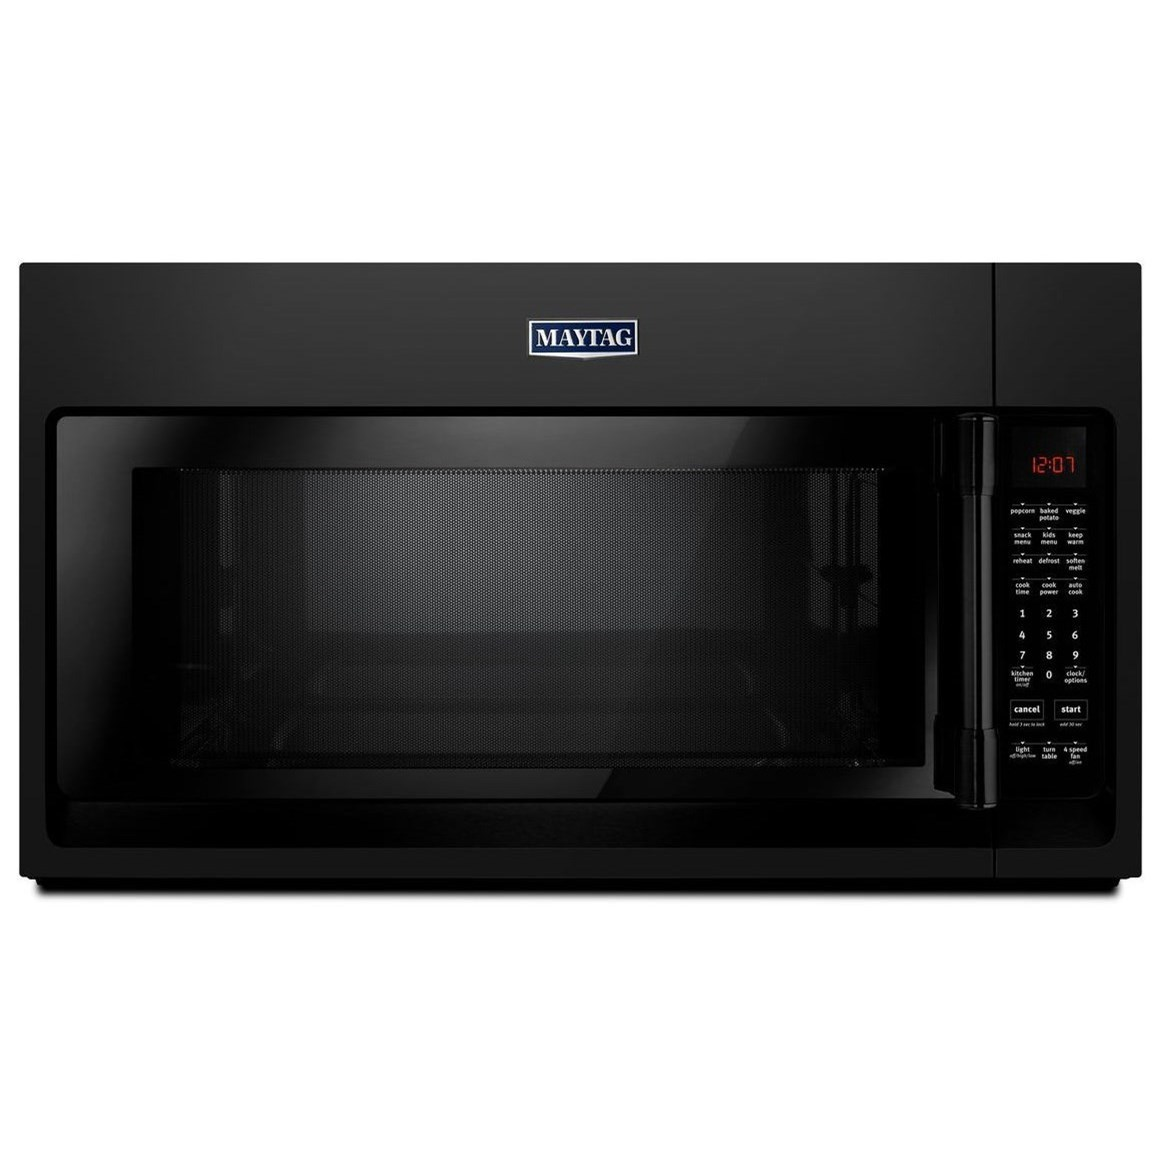 Microwaves 2.1 Cu.Ft. Capacity Over-The-Range Microwave by Maytag at Westrich Furniture & Appliances